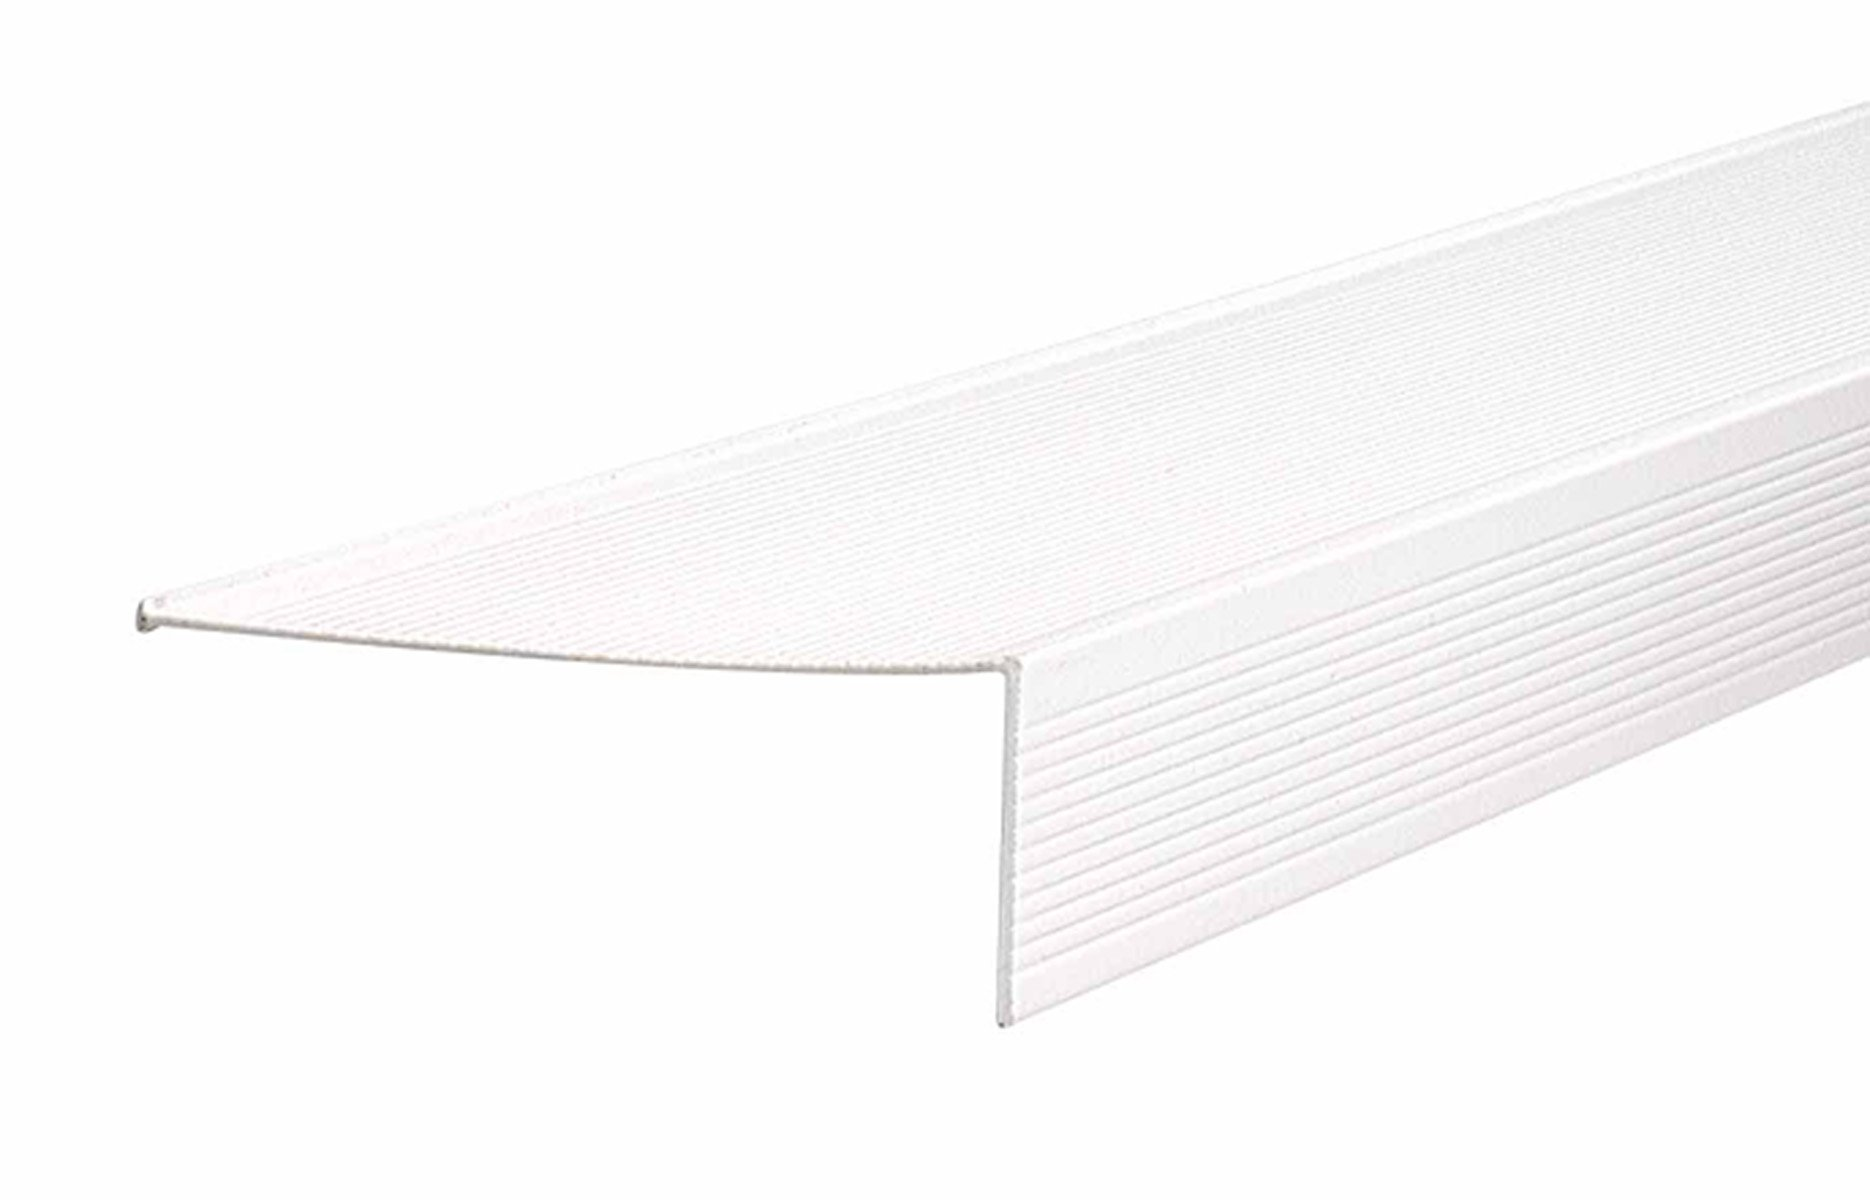 M-D Building Products 69867 TH083 4-1/2-Inch by 1-1/2-Inch by 72-Inch Sill Nosing